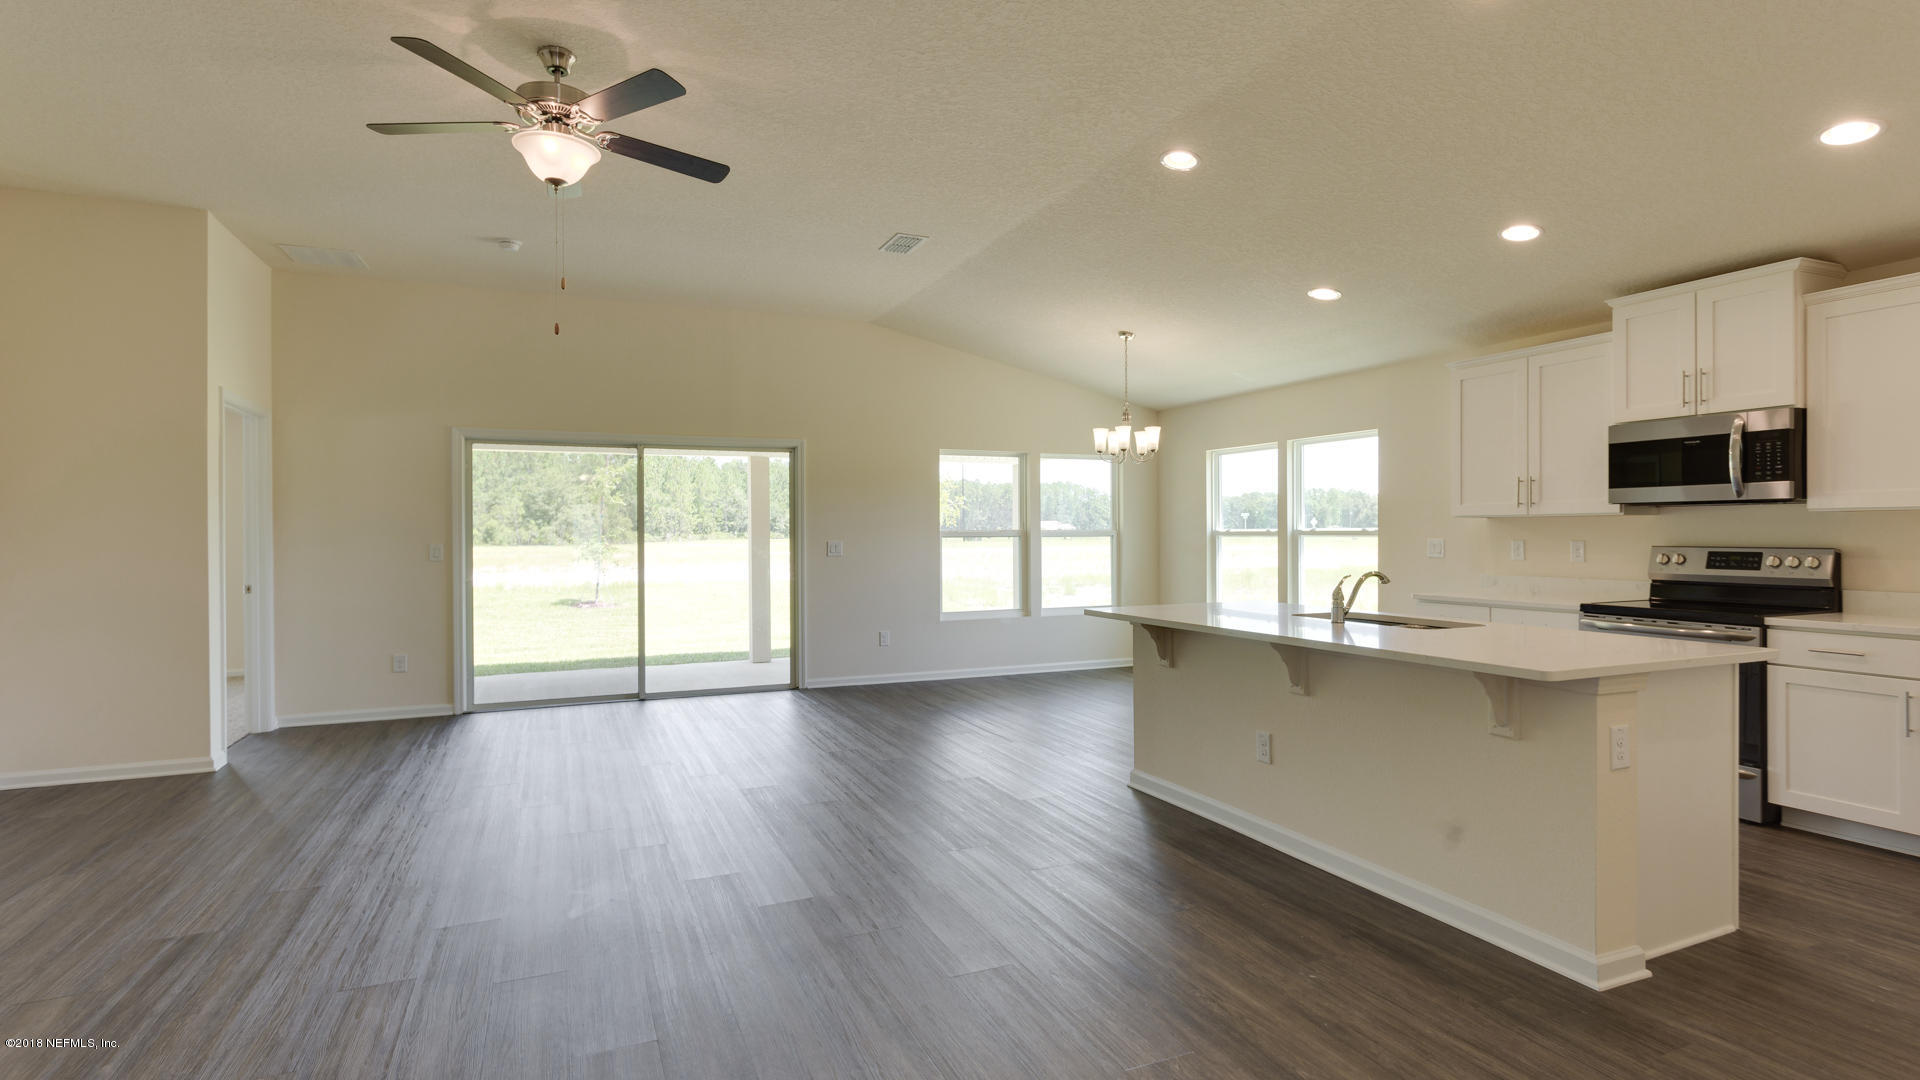 4086 SPRING CREEK, MIDDLEBURG, FLORIDA 32068, 4 Bedrooms Bedrooms, ,2 BathroomsBathrooms,Residential - single family,For sale,SPRING CREEK,945296